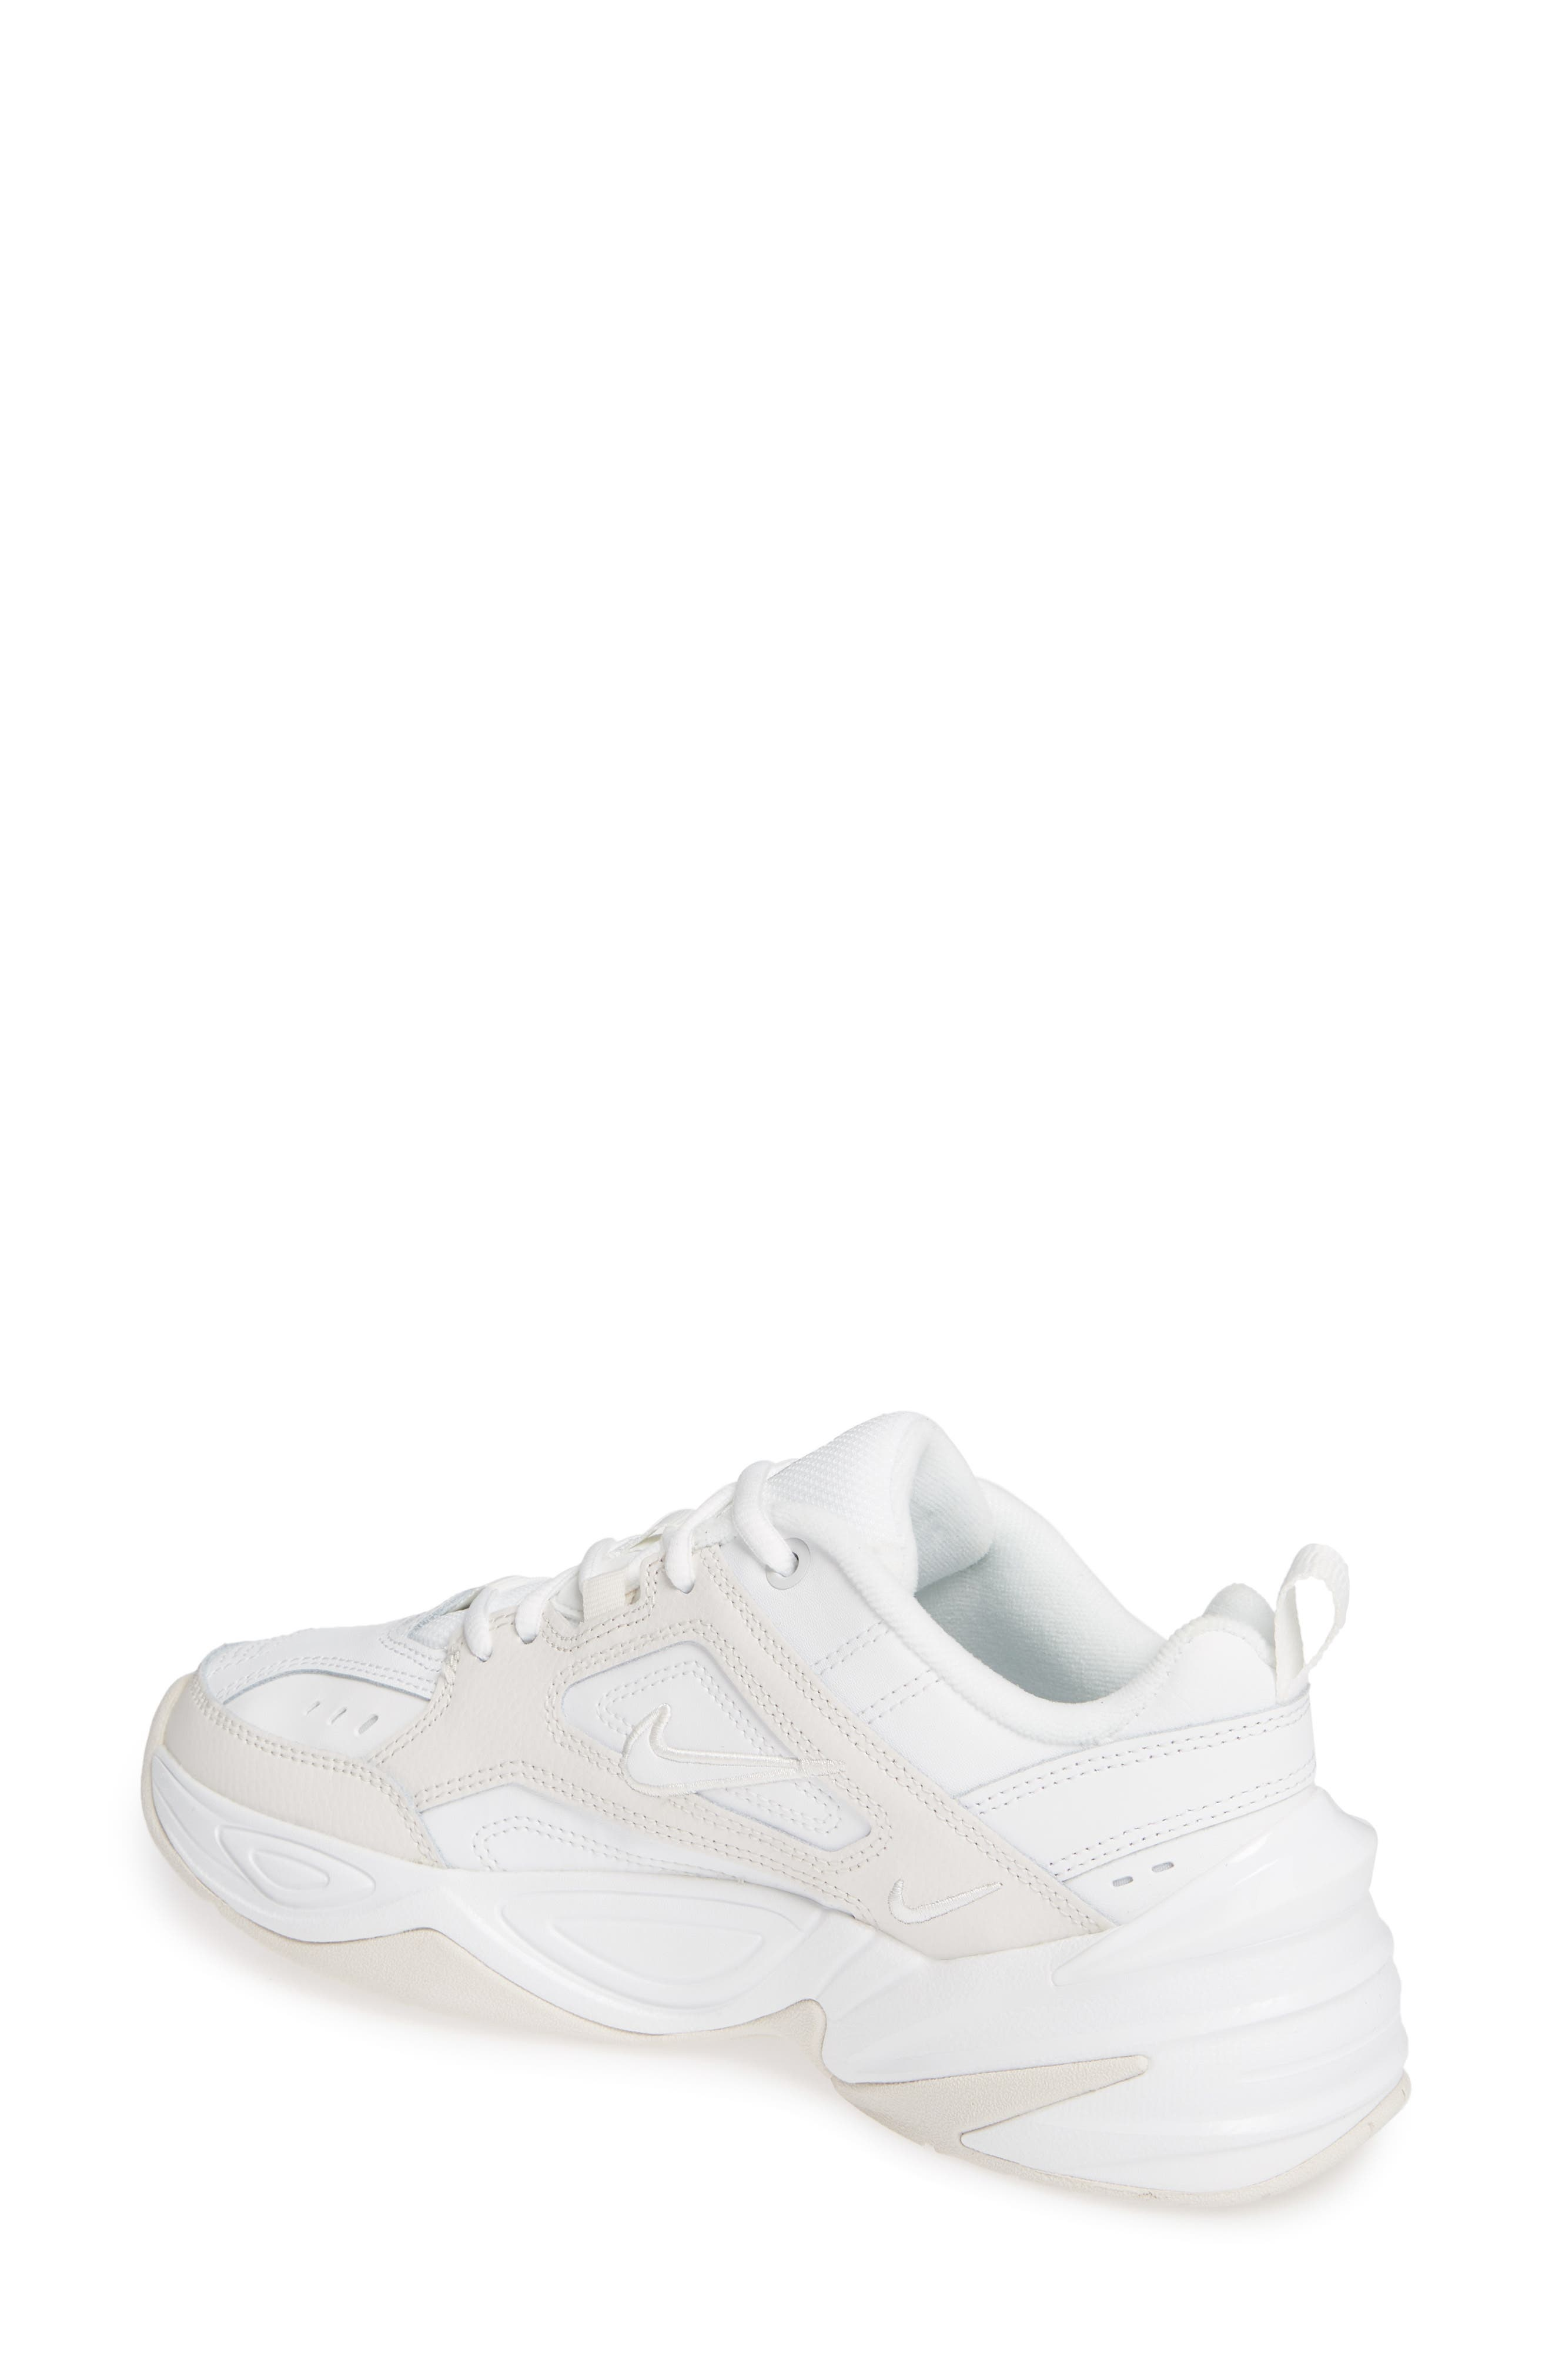 M2K Tekno Sneaker,                             Alternate thumbnail 2, color,                             WHITE